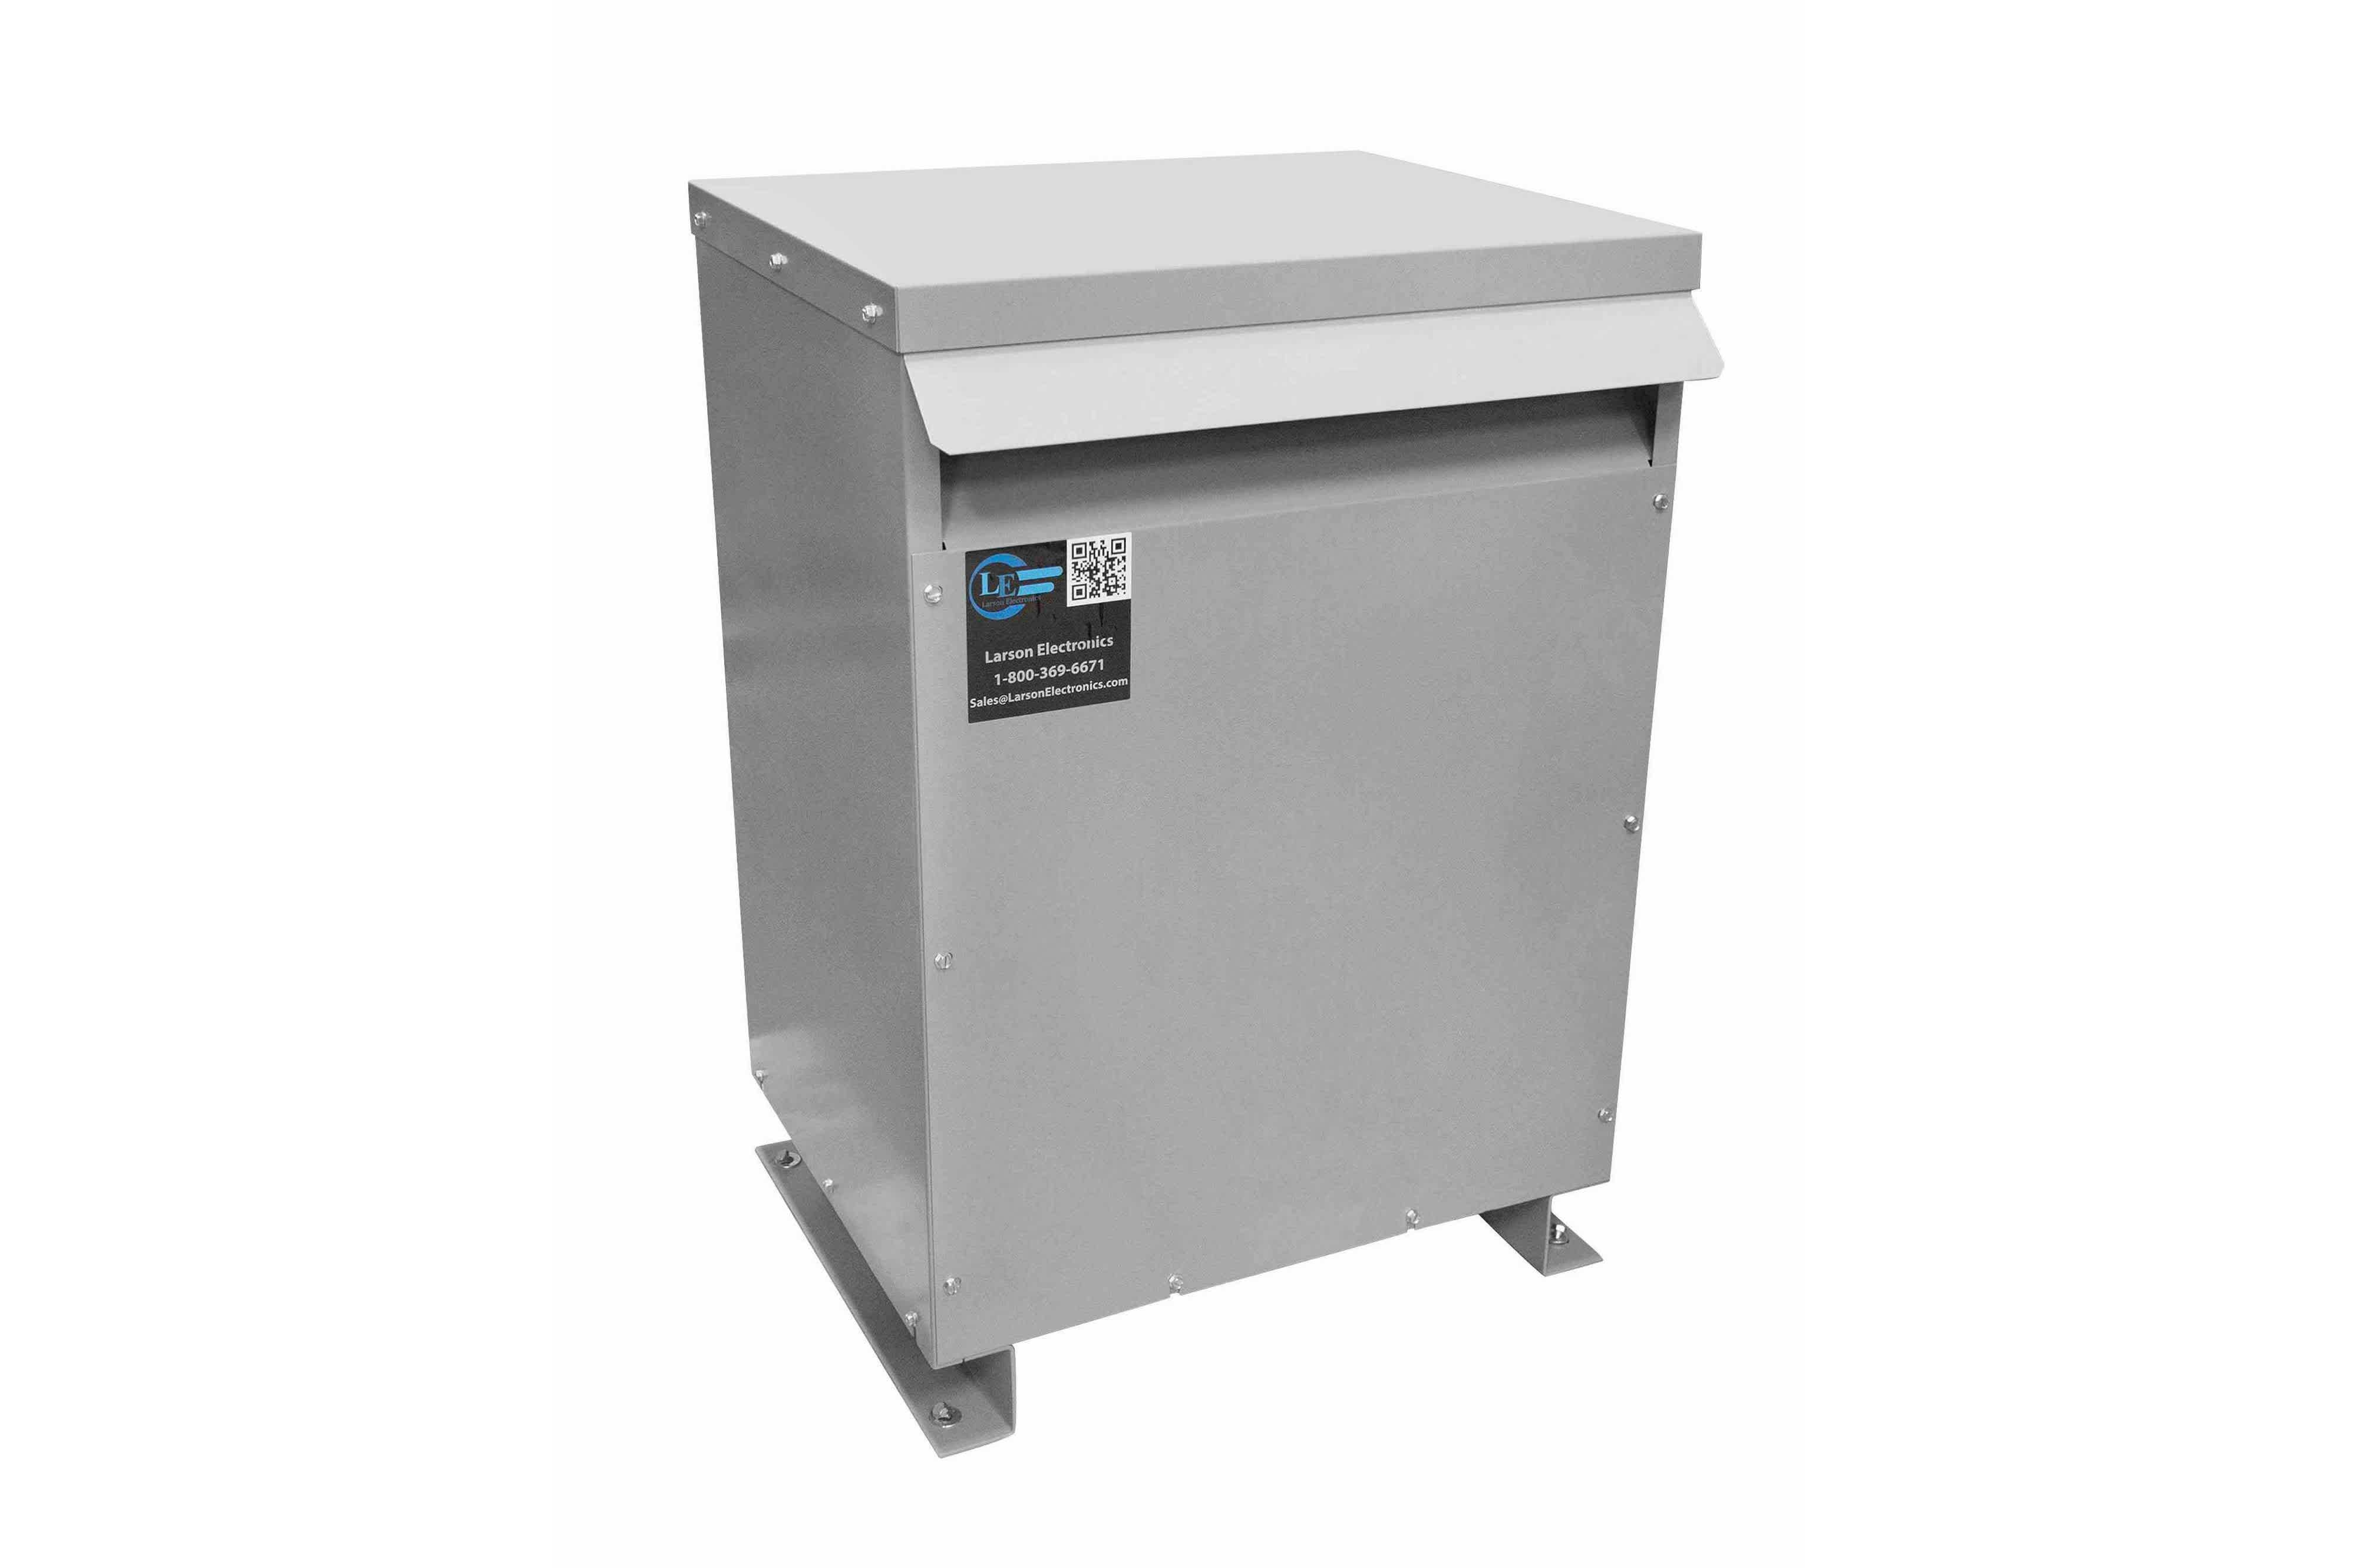 200 kVA 3PH Isolation Transformer, 480V Delta Primary, 575V Delta Secondary, N3R, Ventilated, 60 Hz